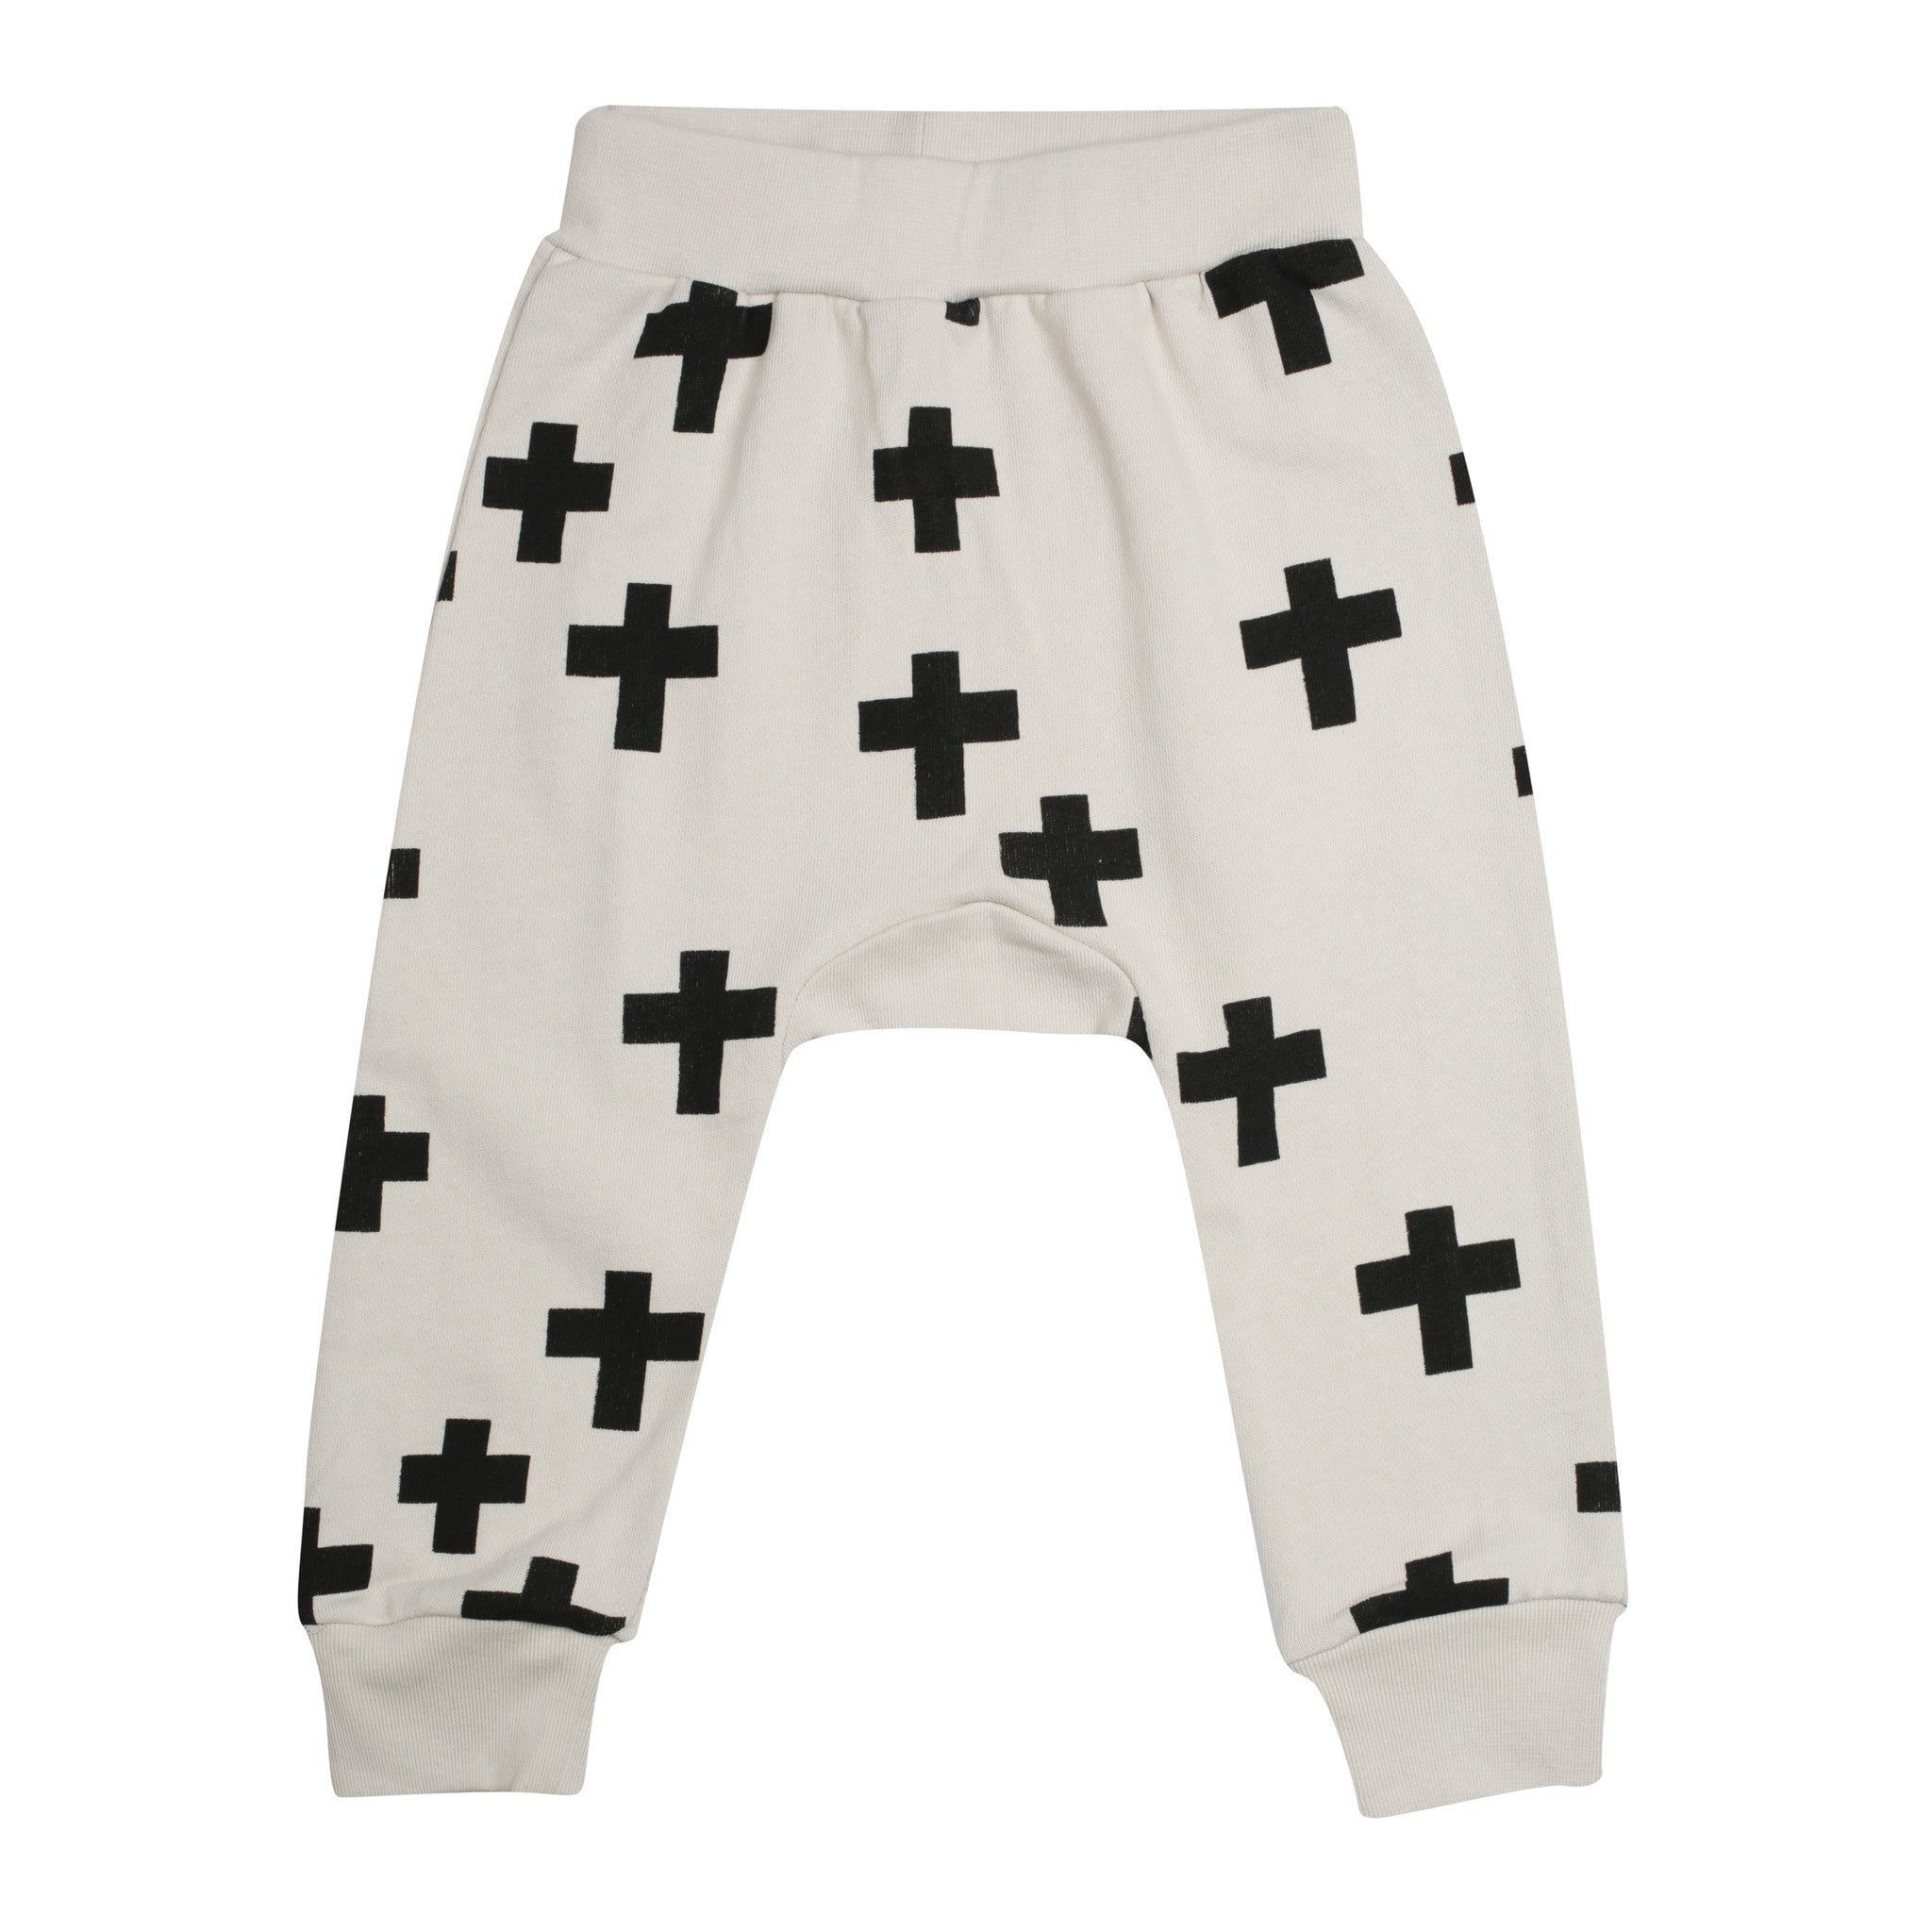 Kris Cross Harem Pants – Bone